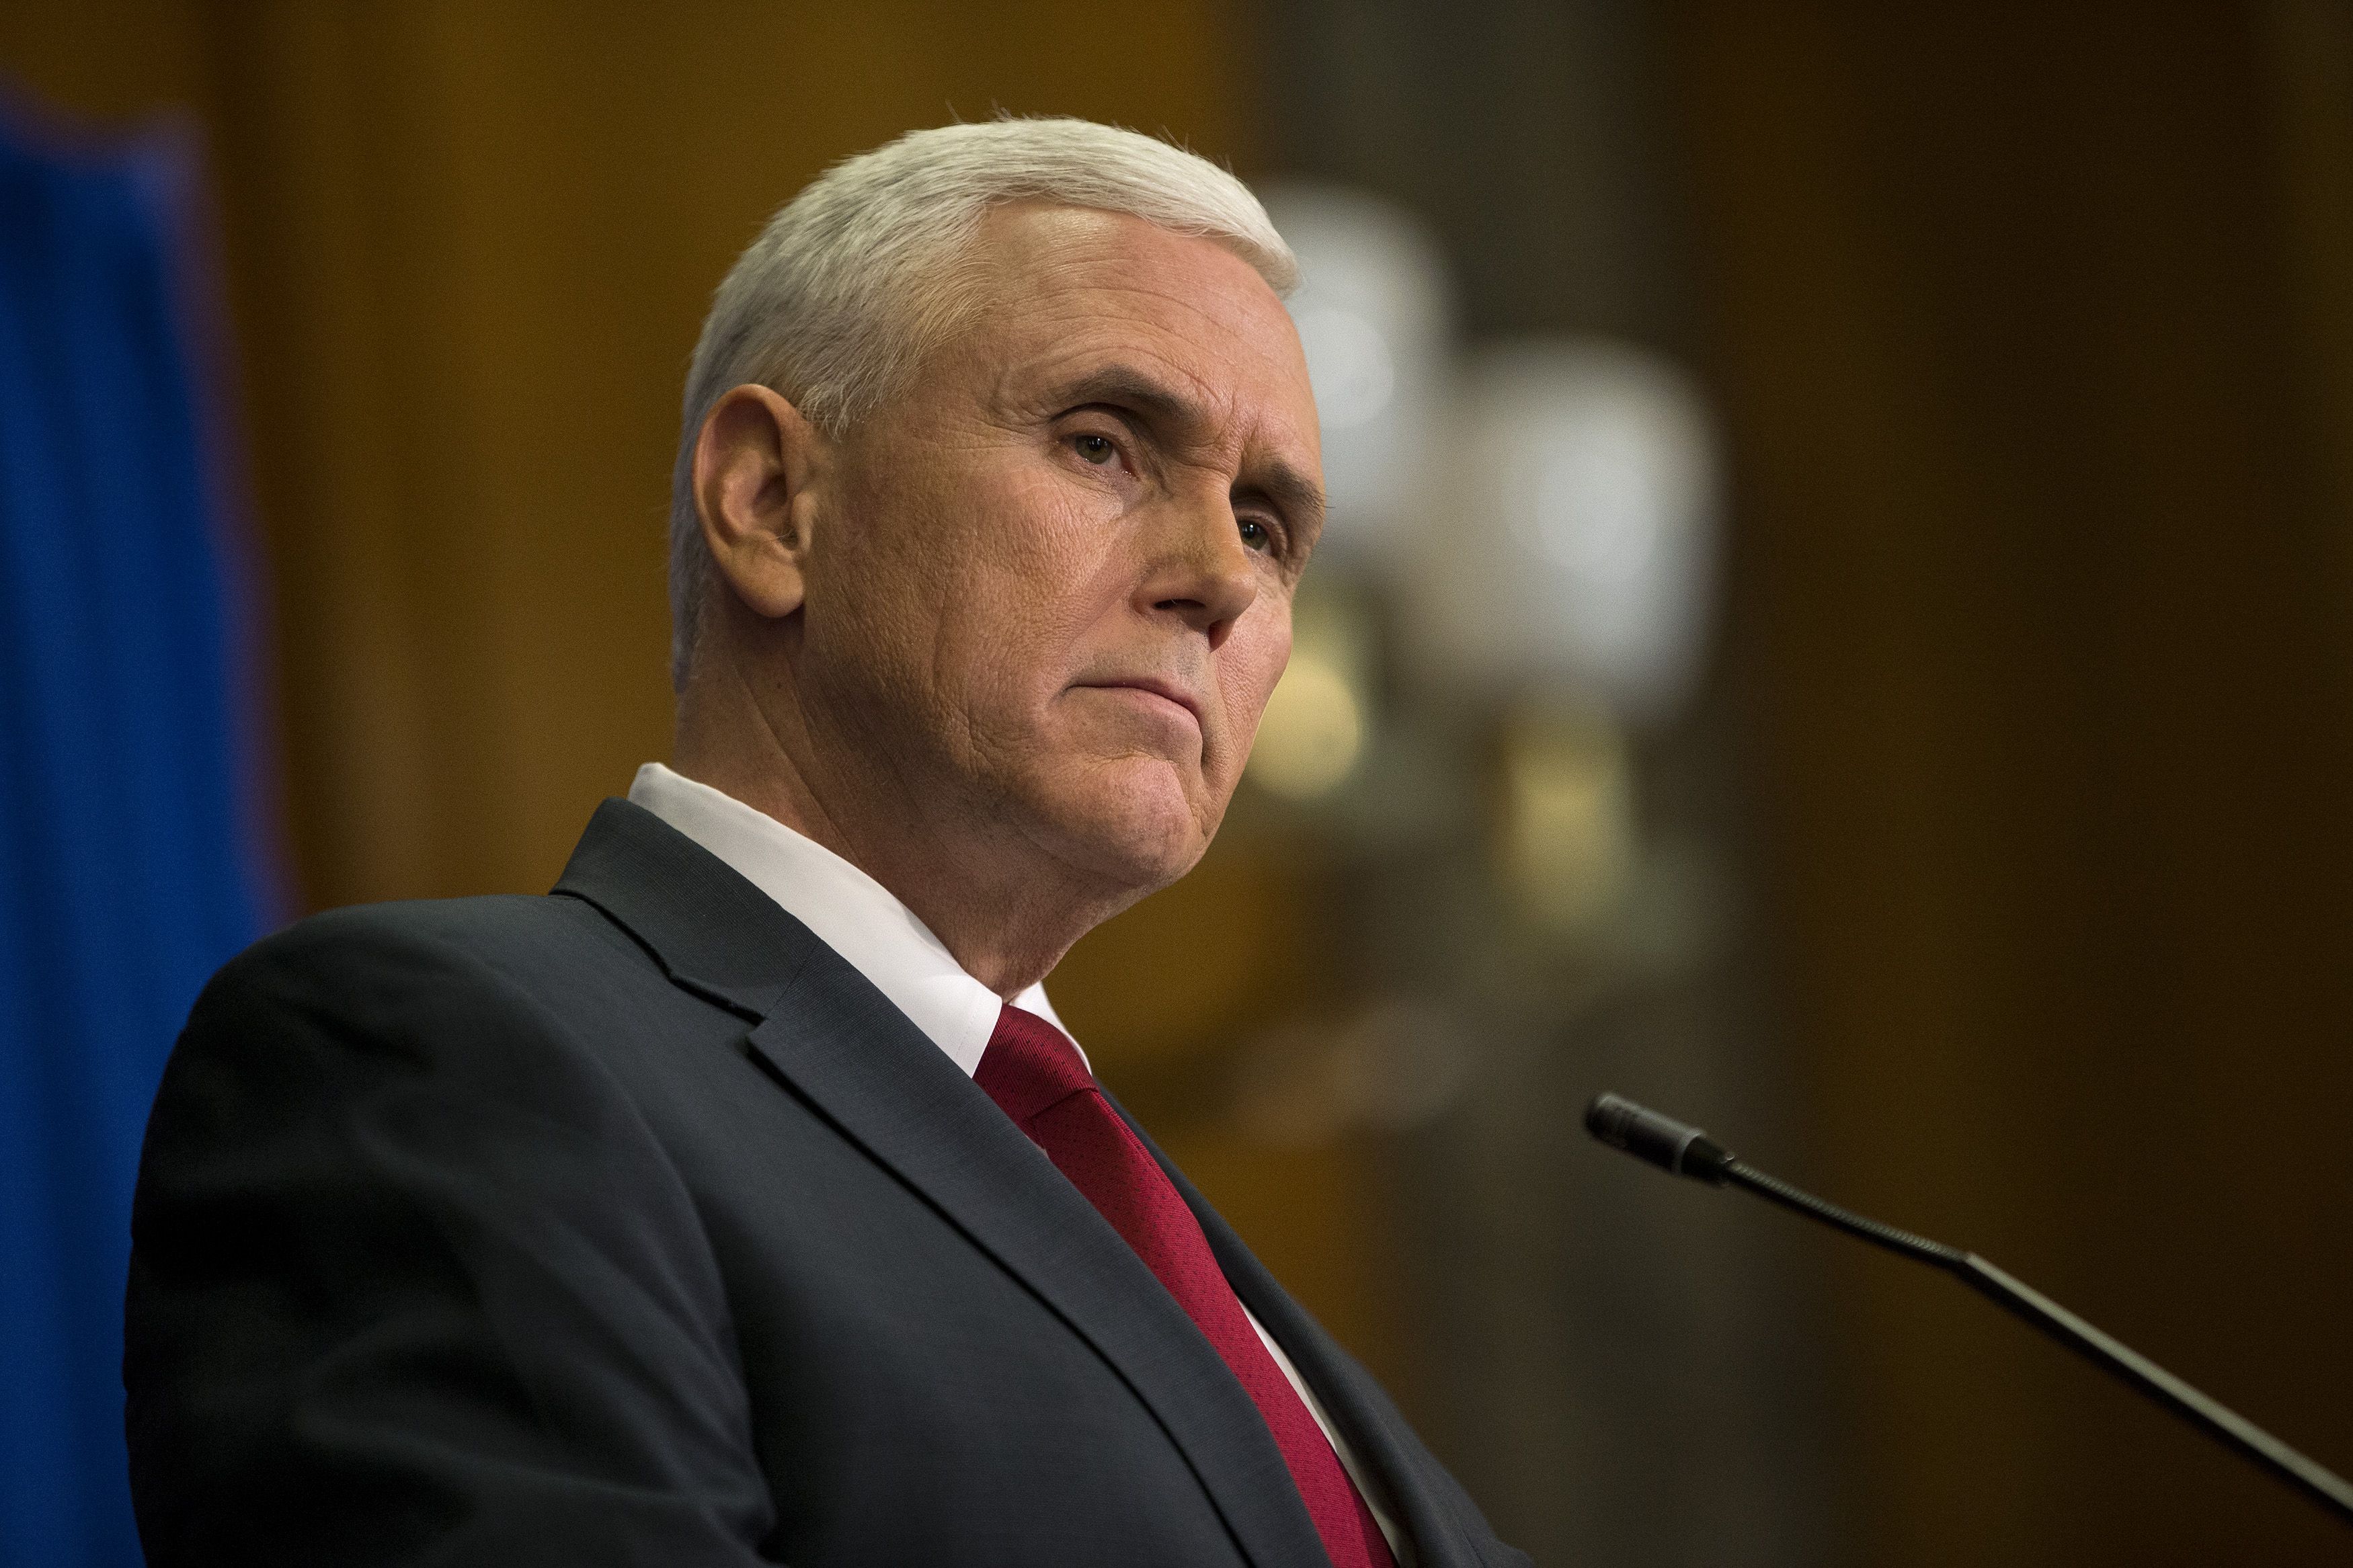 Indiana Gov. Mike Pence speaks during a press conference March 31, 2015 at the Indiana State Library in Indianapolis, Indiana. Pence spoke about the state's controversial Religious Freedom Restoration Act which has been condemned by business leaders and Democrats.